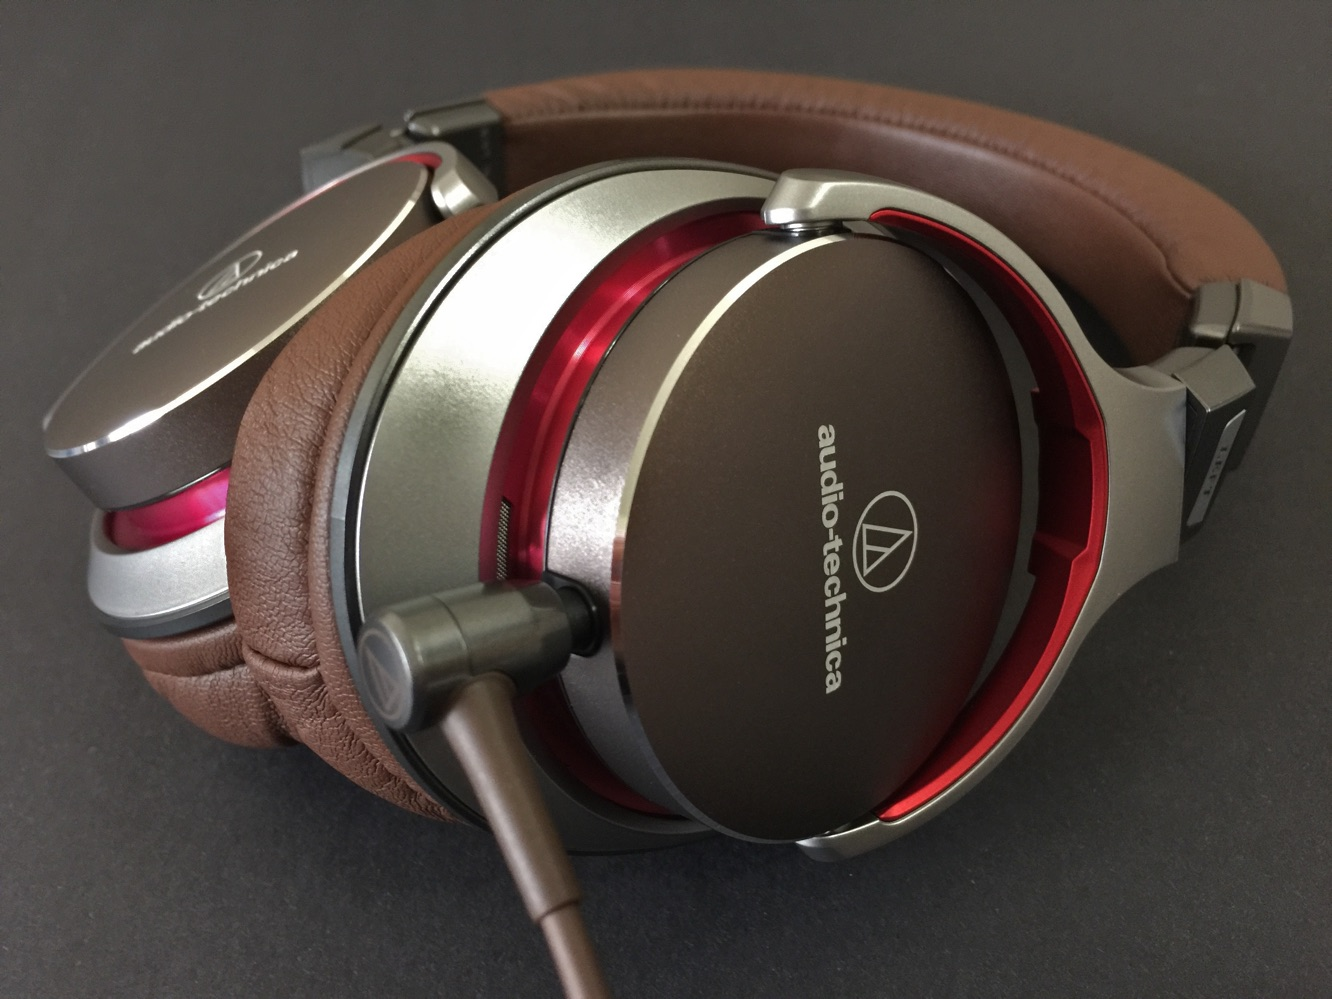 Review: Audio-Technica ATH-MSR7 SonicPro Over-Ear Headphones 7